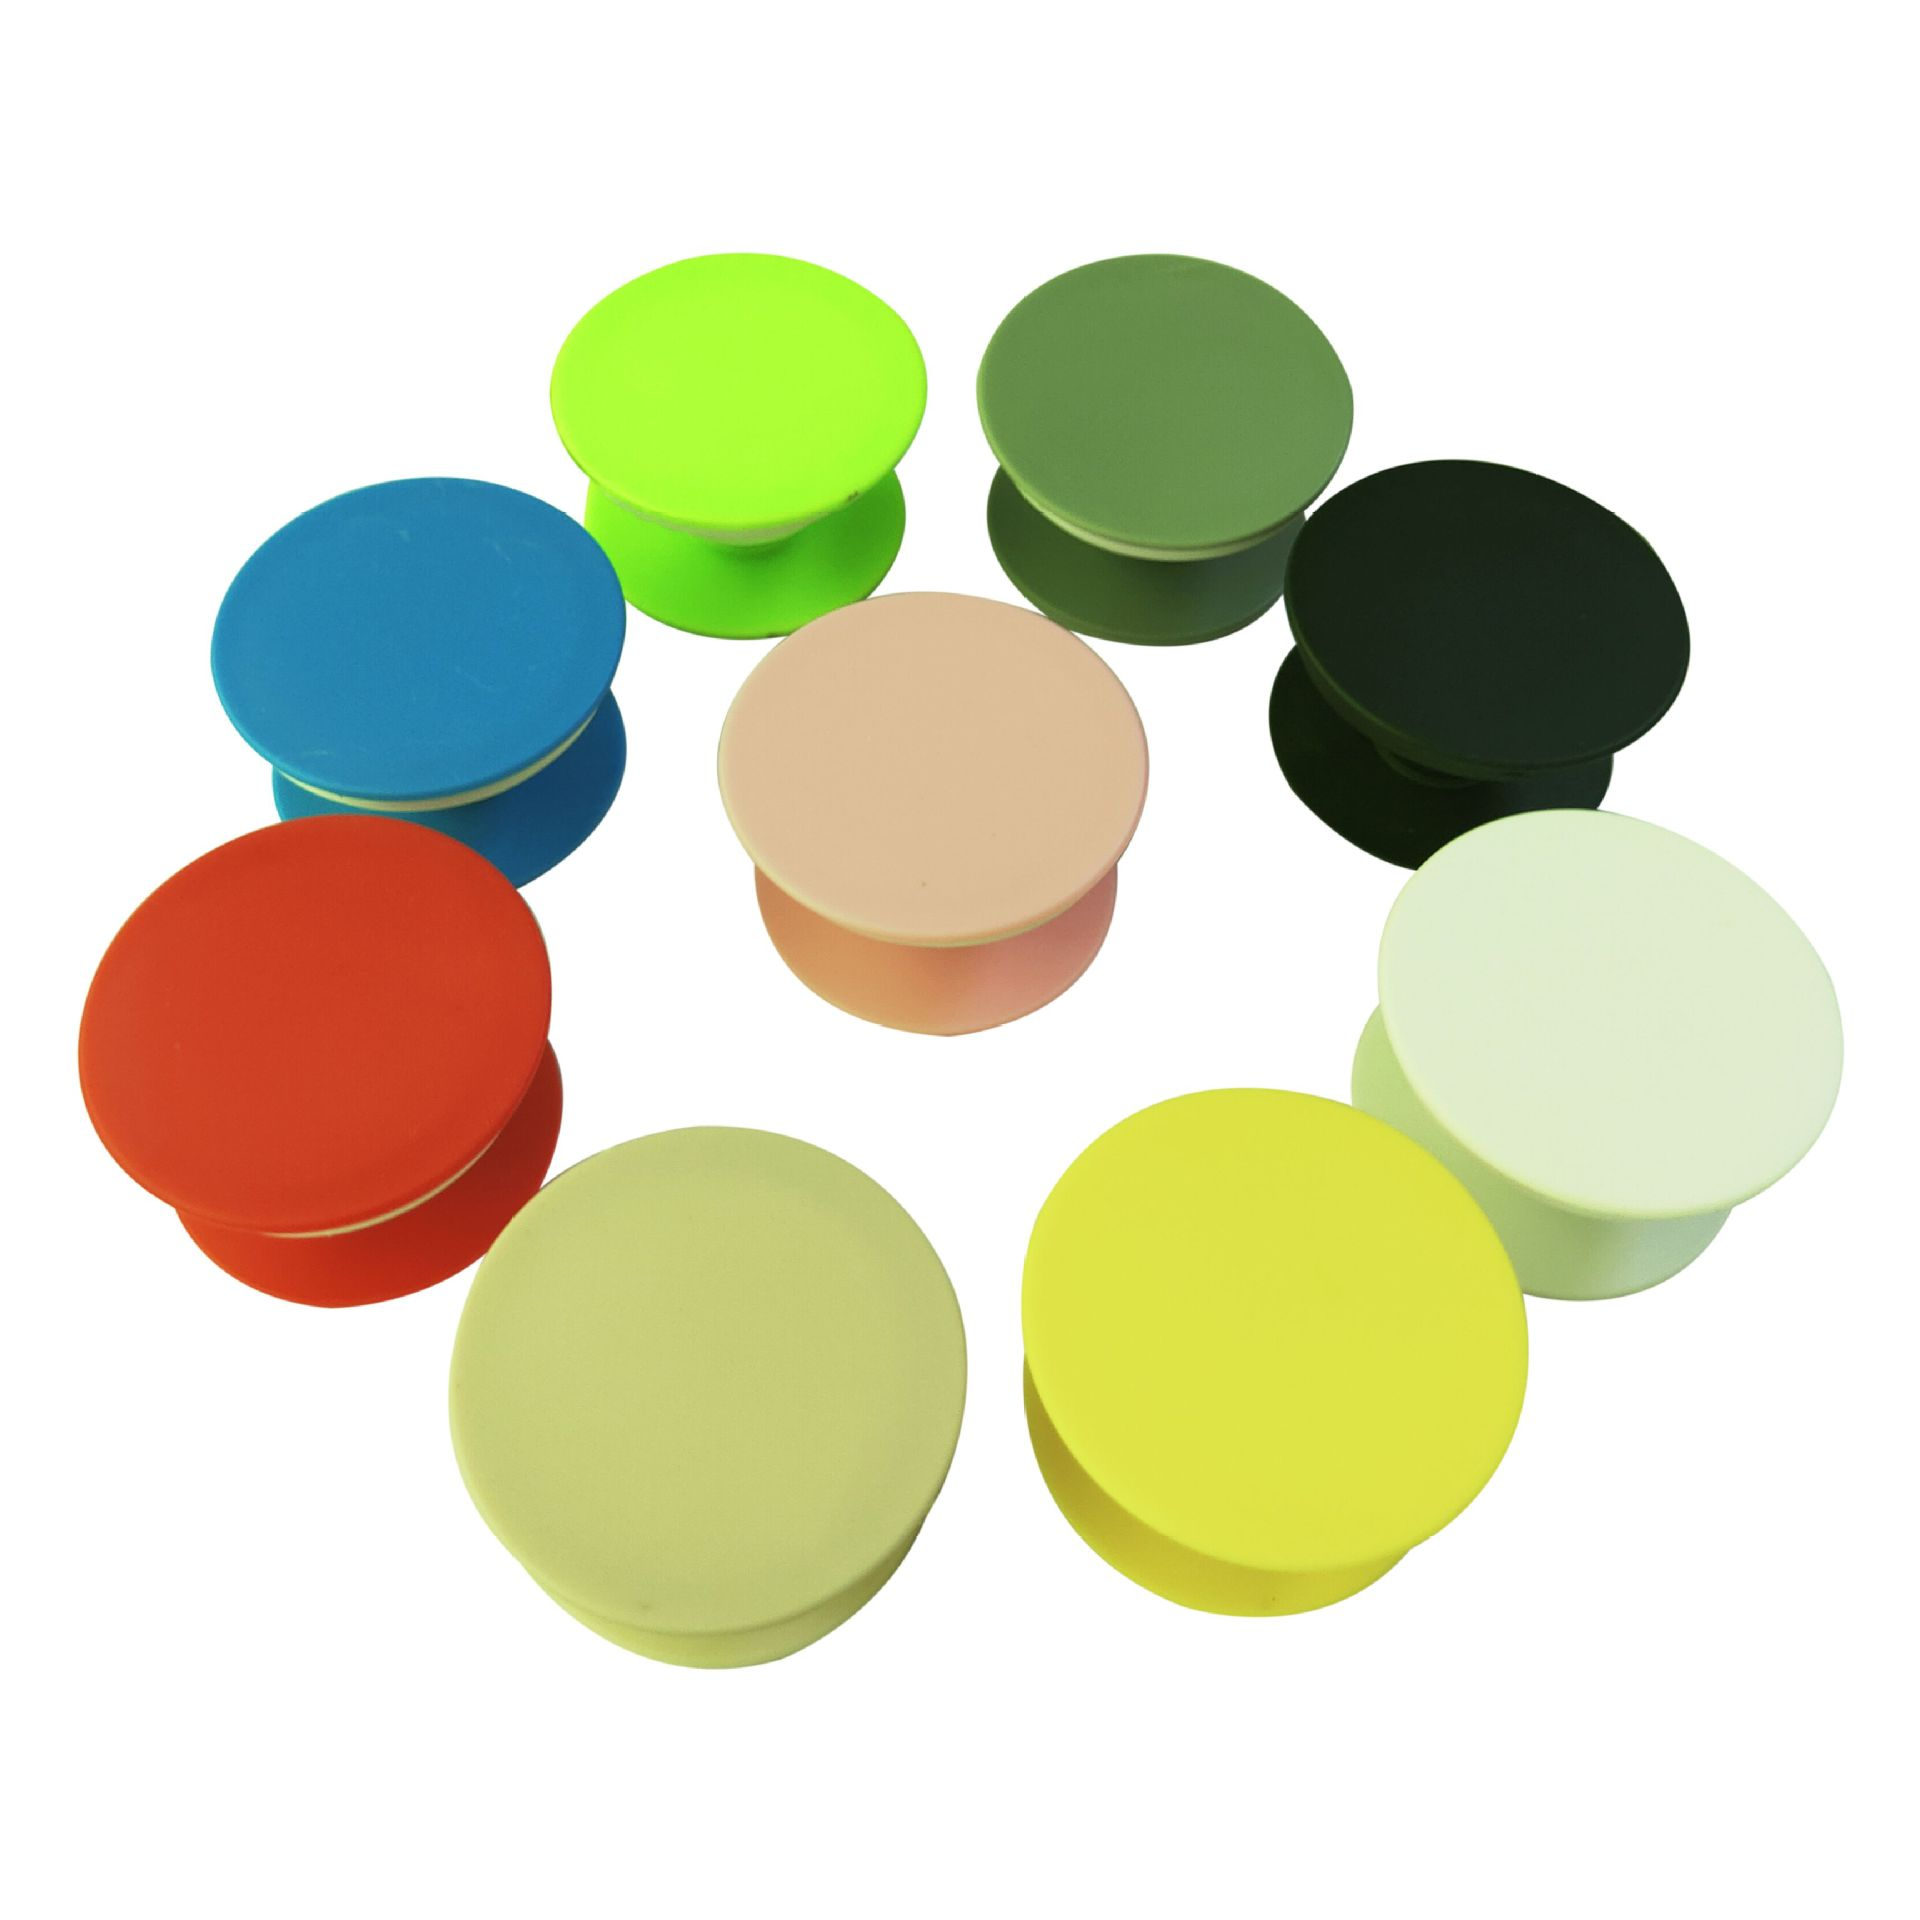 1pcs Round Blank Material Mobile Phone Folding Stretch Airbag Bracket Phone Holder Balloon Support